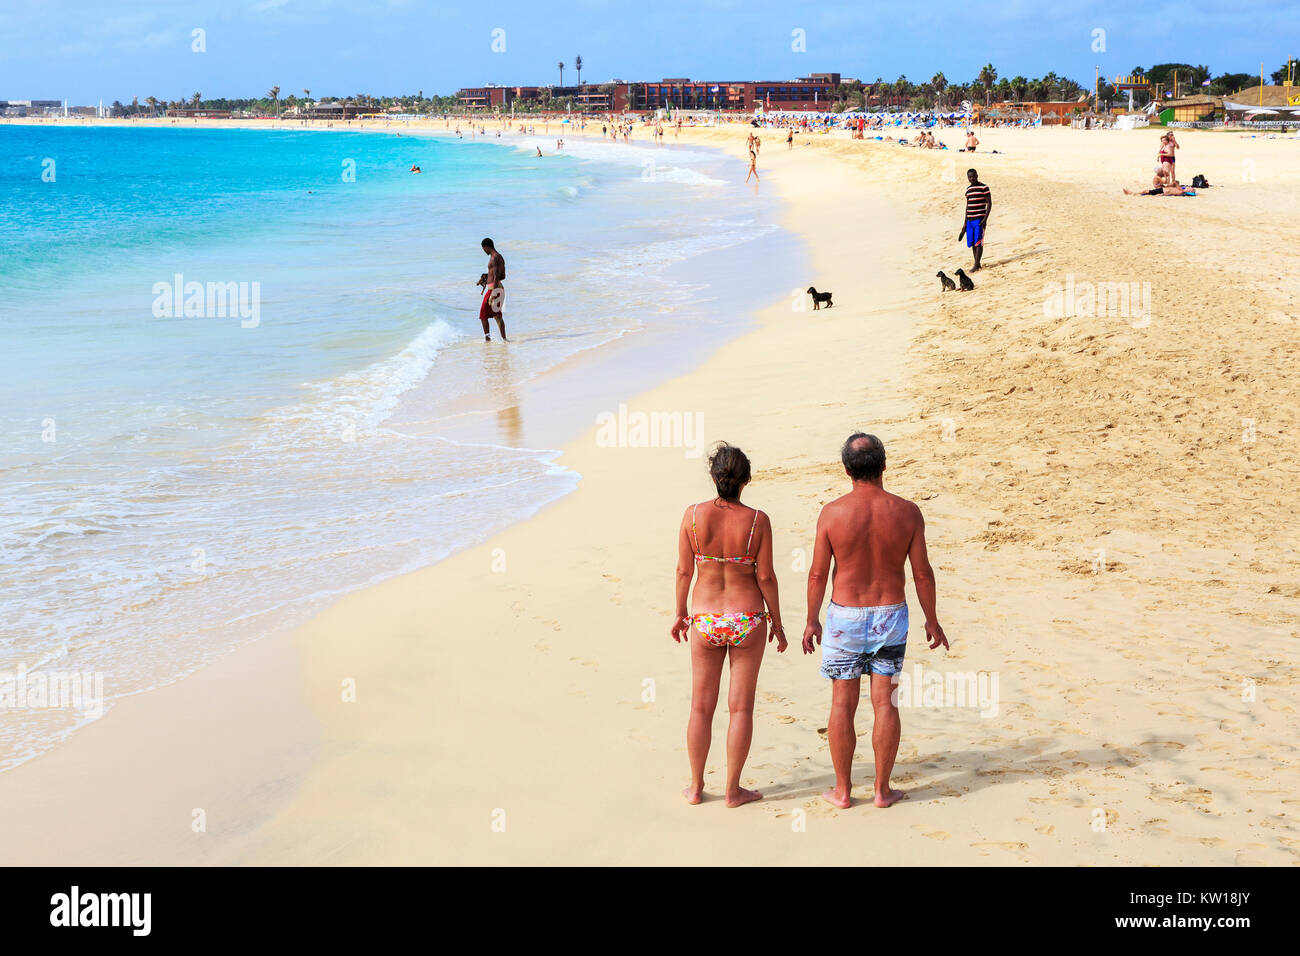 Tourists on the public beach at Santa Maria, Sal, Cape Verde, Africa - Stock Image